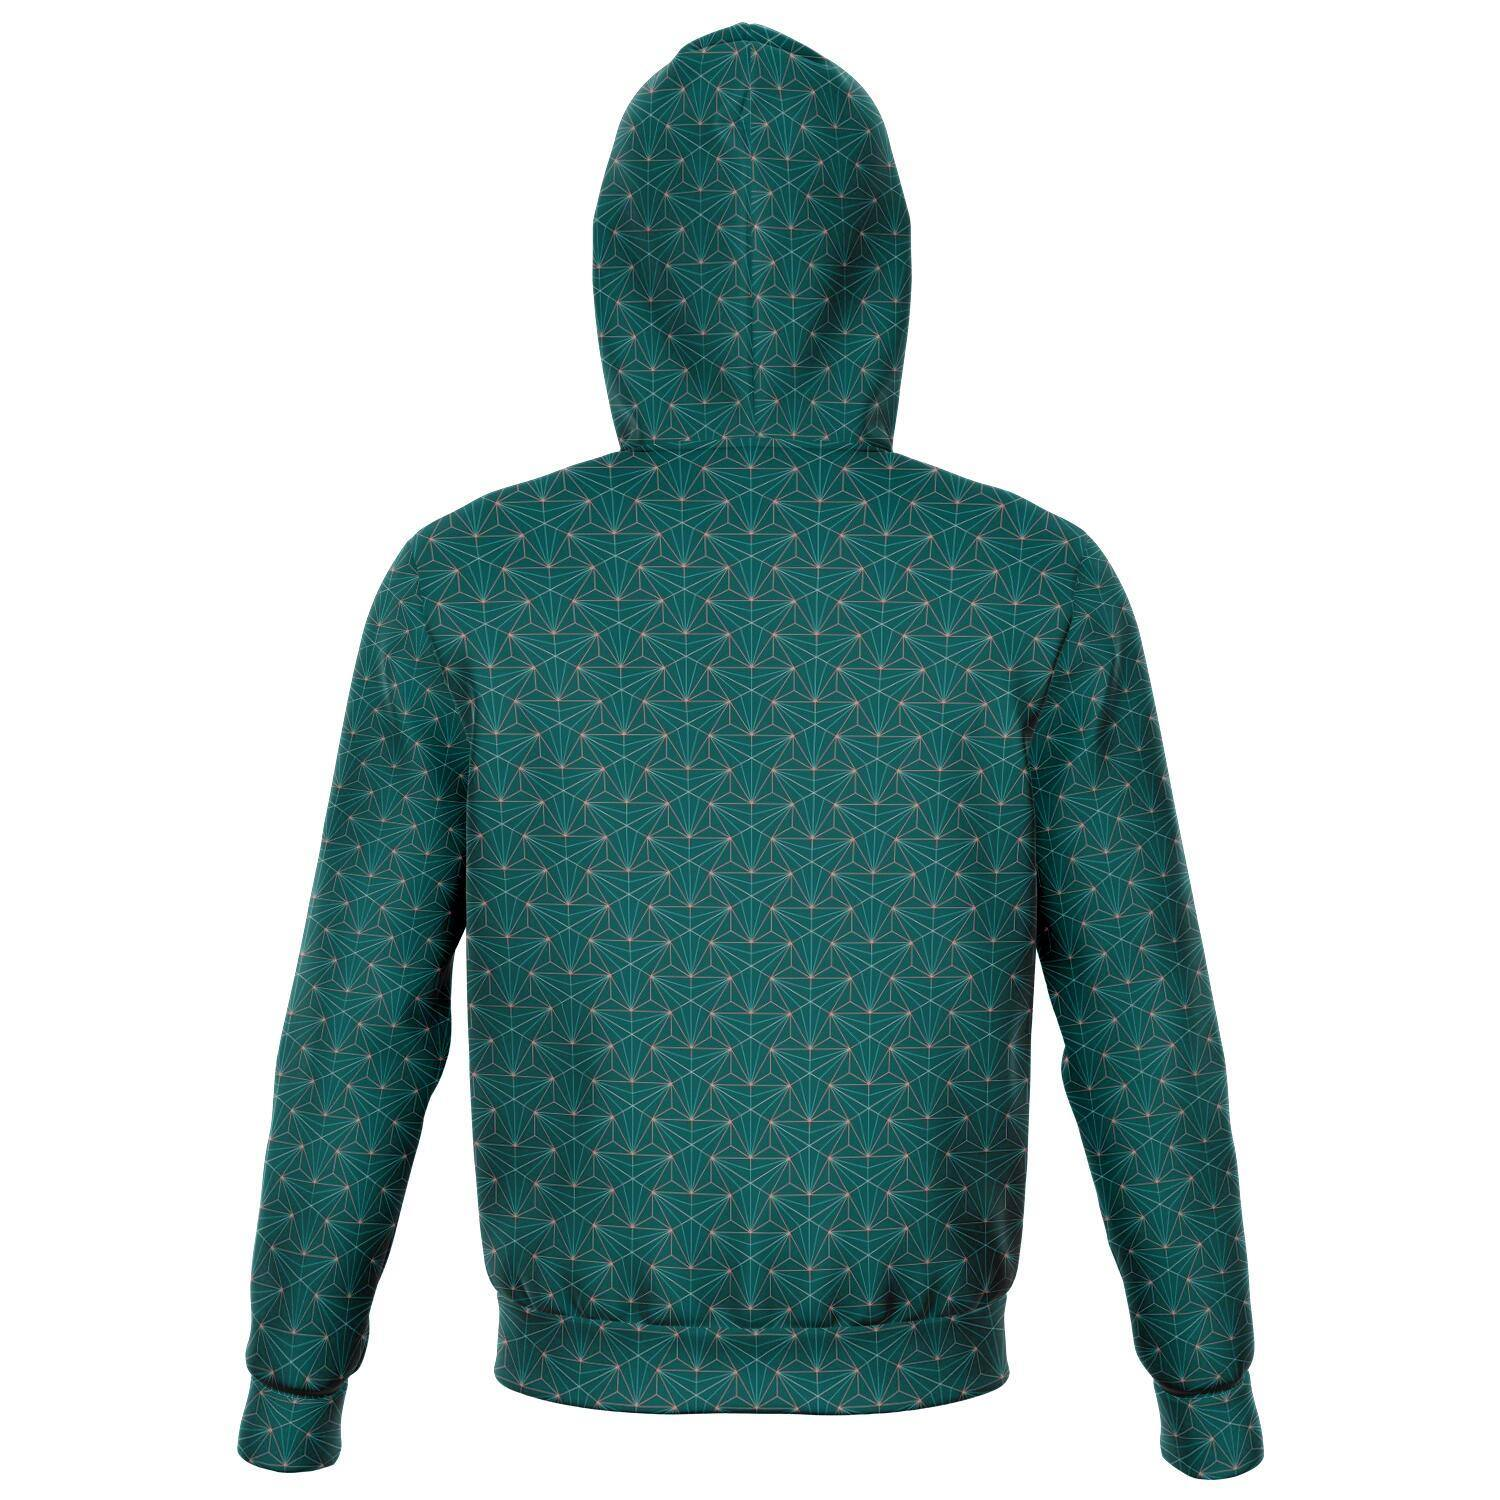 TURQUOISE SACRED CONNECTIONS PREMIUM ZIP UP HOODIE